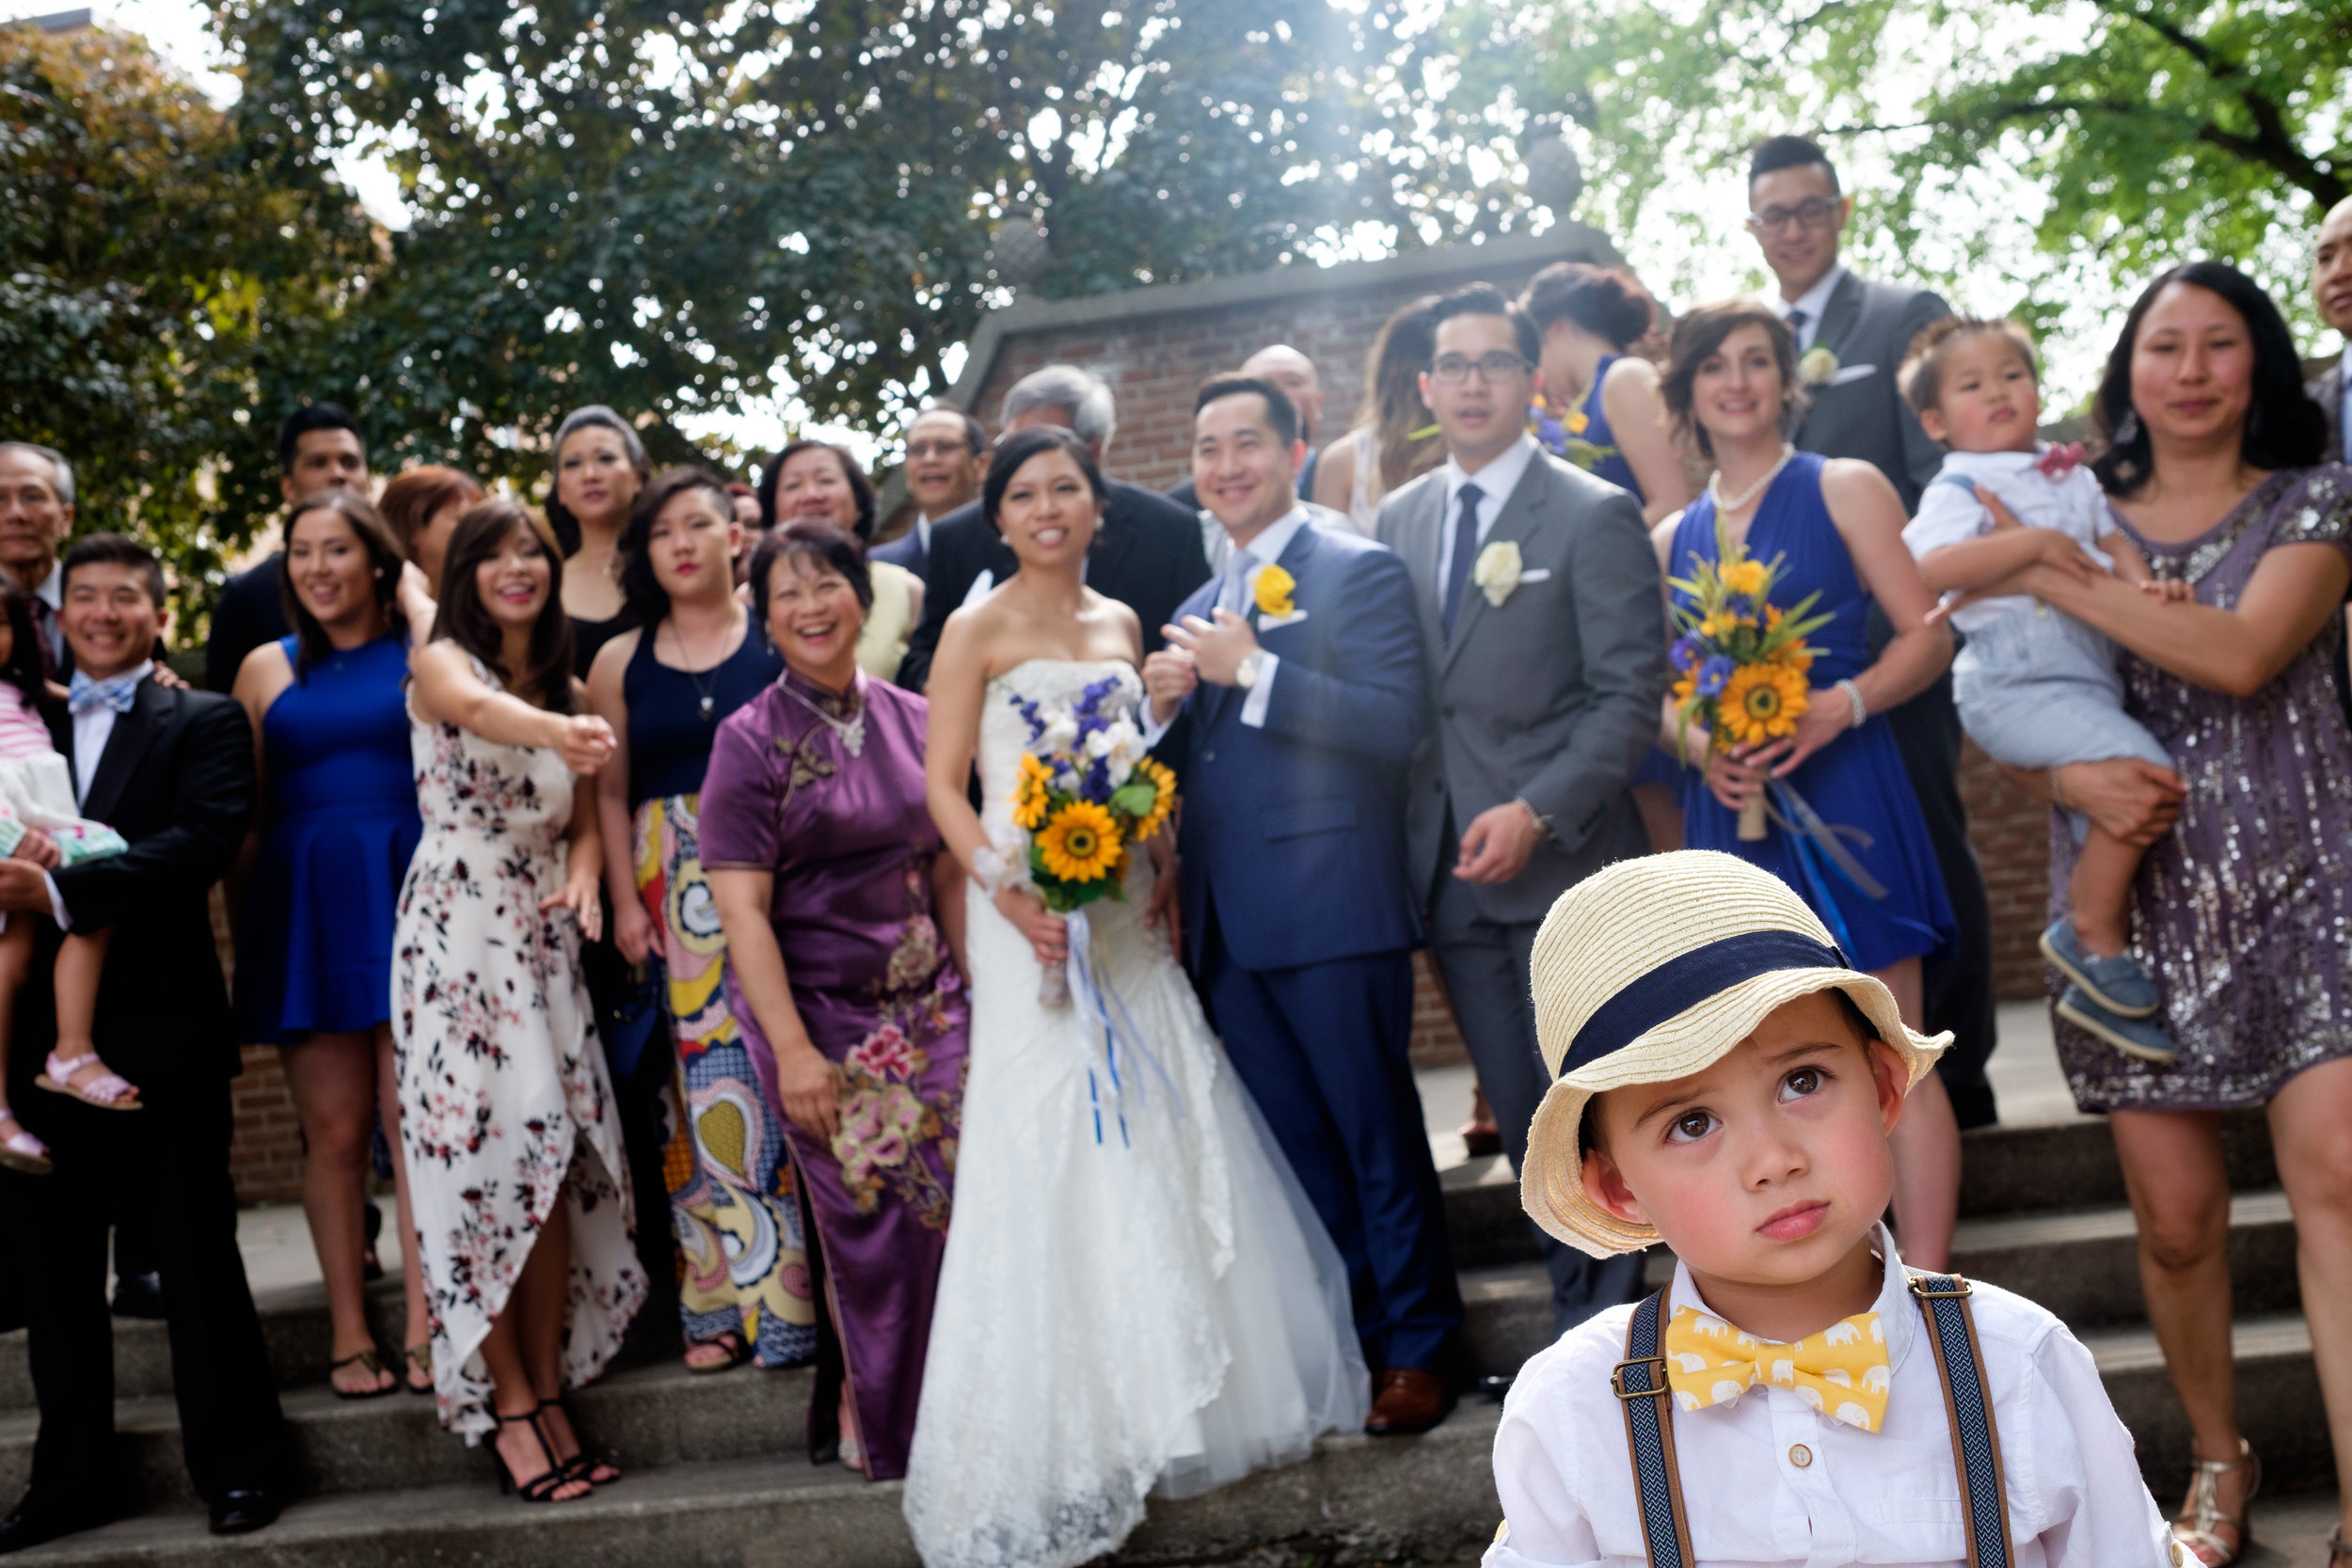 It's better to be lucky than good!   (it also helps being good).  Sometimes when you have an uncooperative ring bearer you turn lemons into lemonade.  As we were trying to get a big extended family picture the groom's nephew decided he was going to do his own thing.